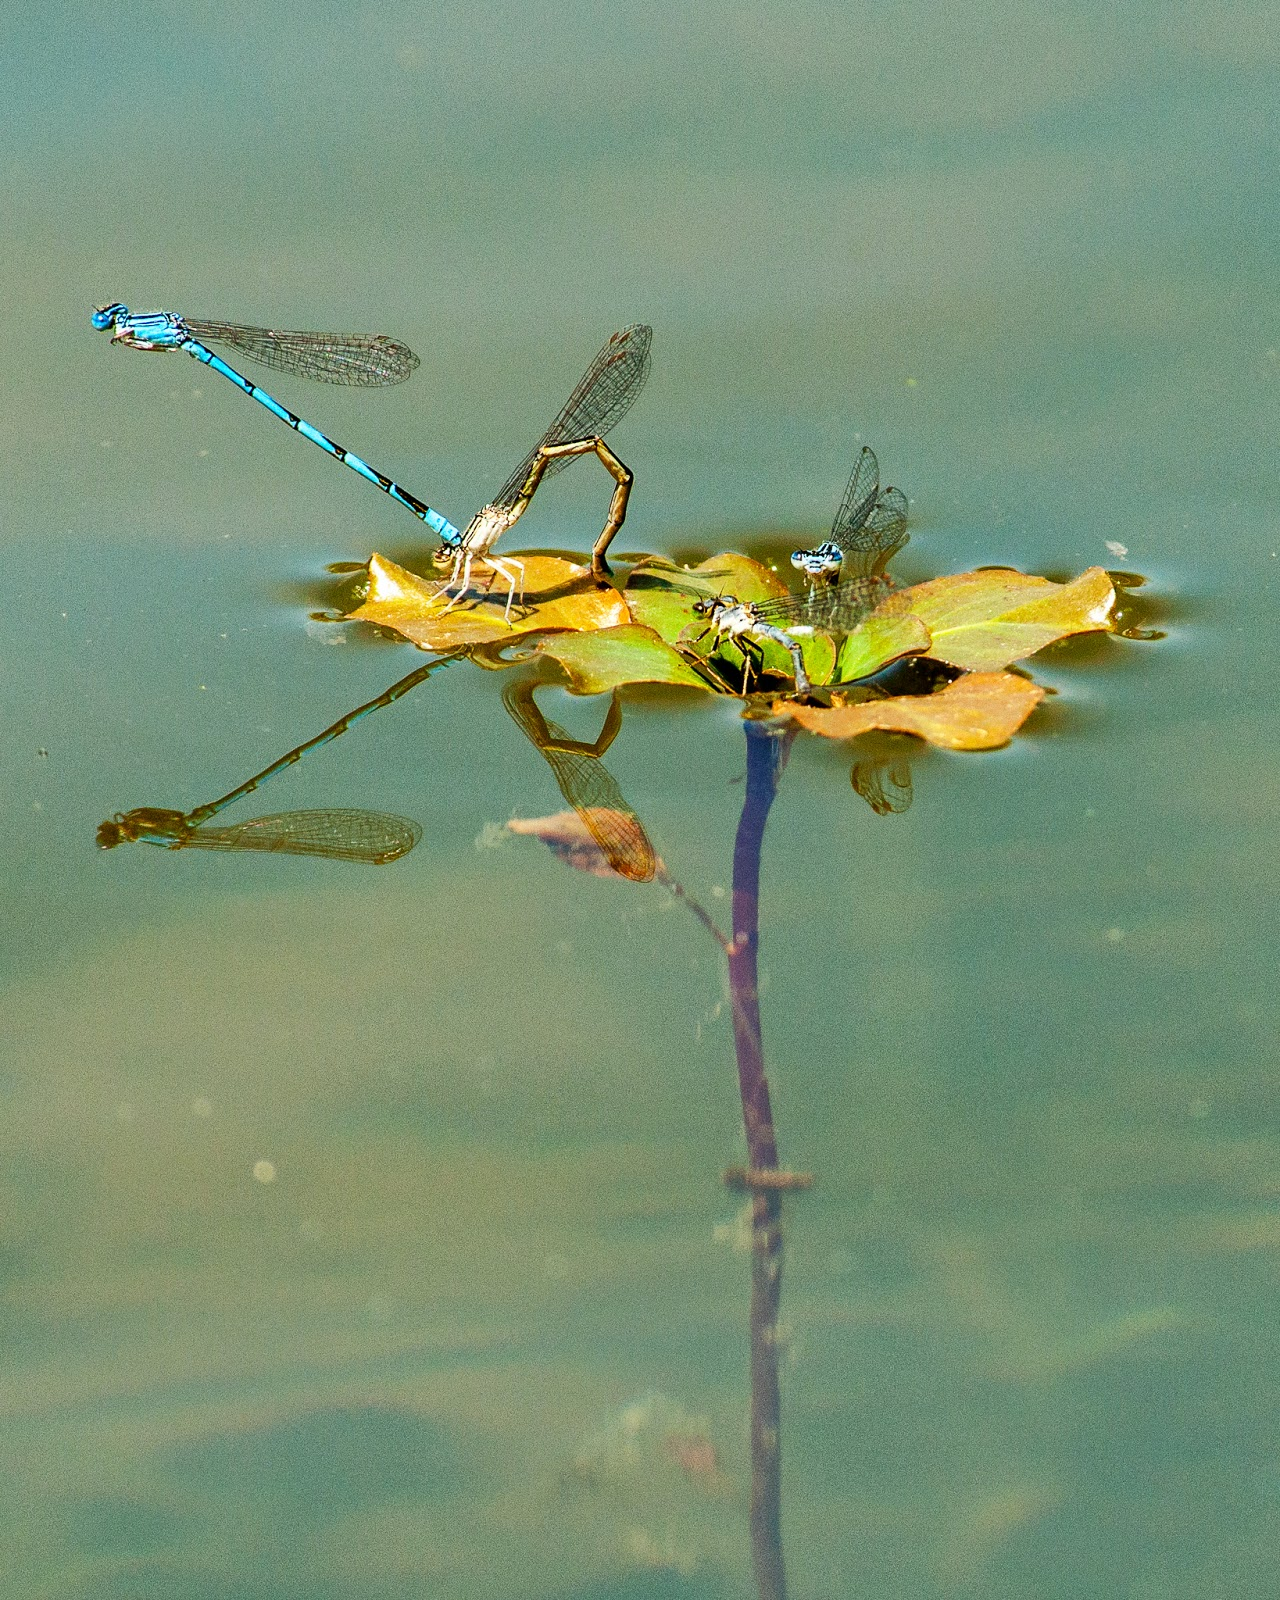 Mating Damselflies, Colleyville Nature Center